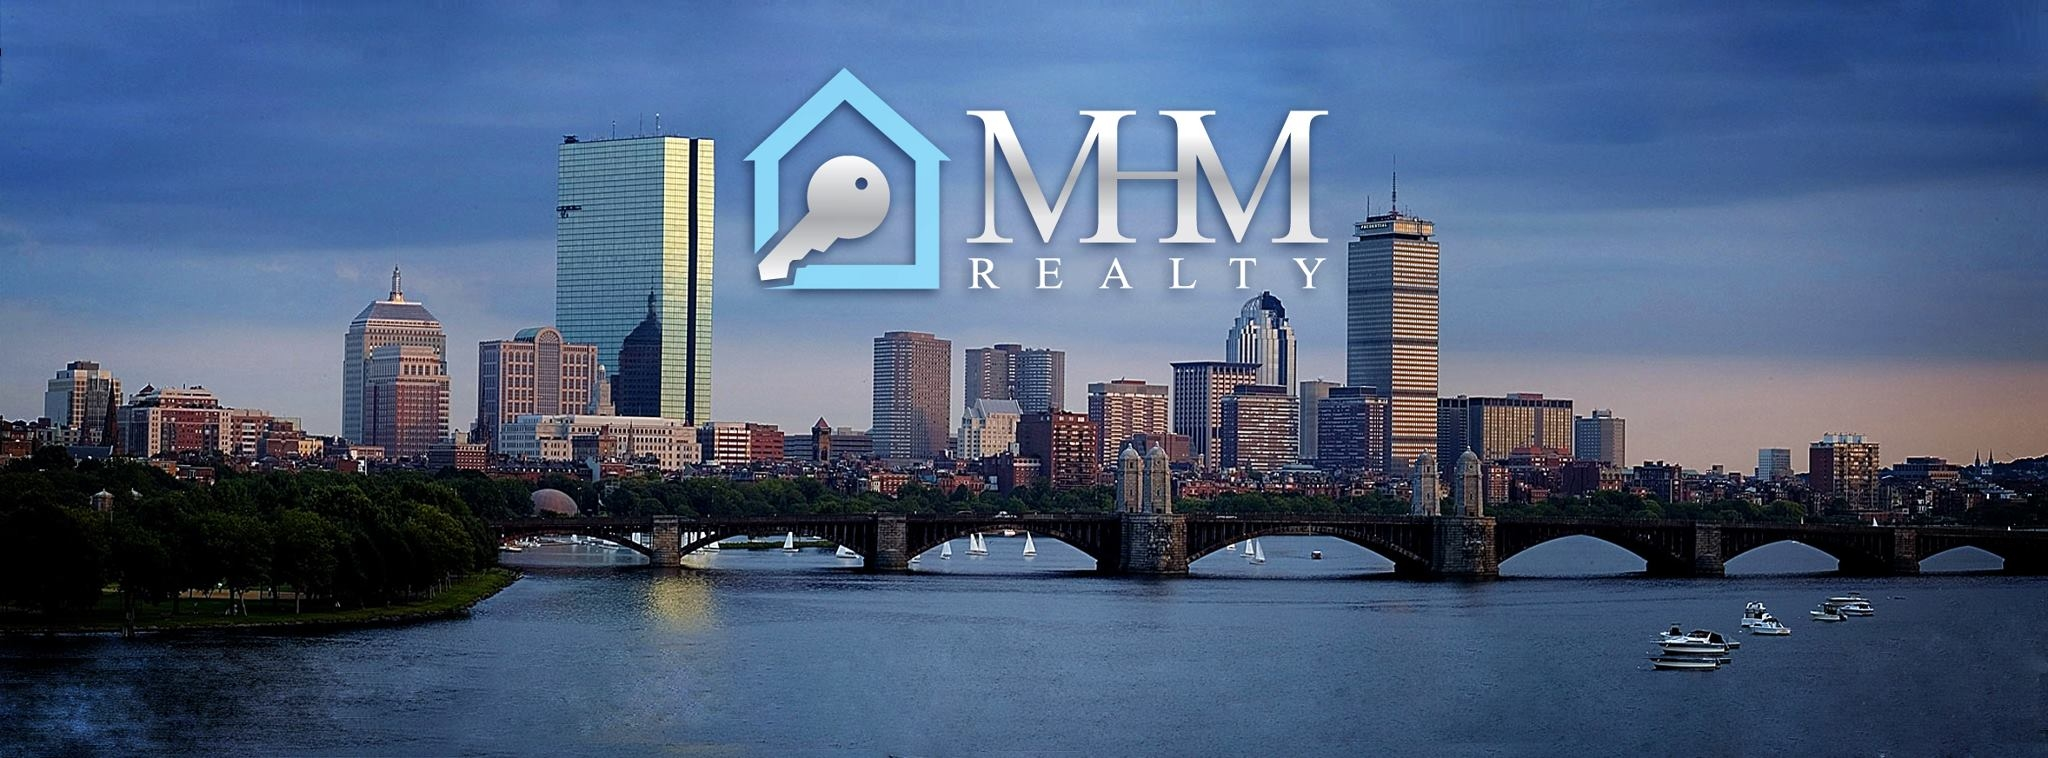 MHM Realty image 1